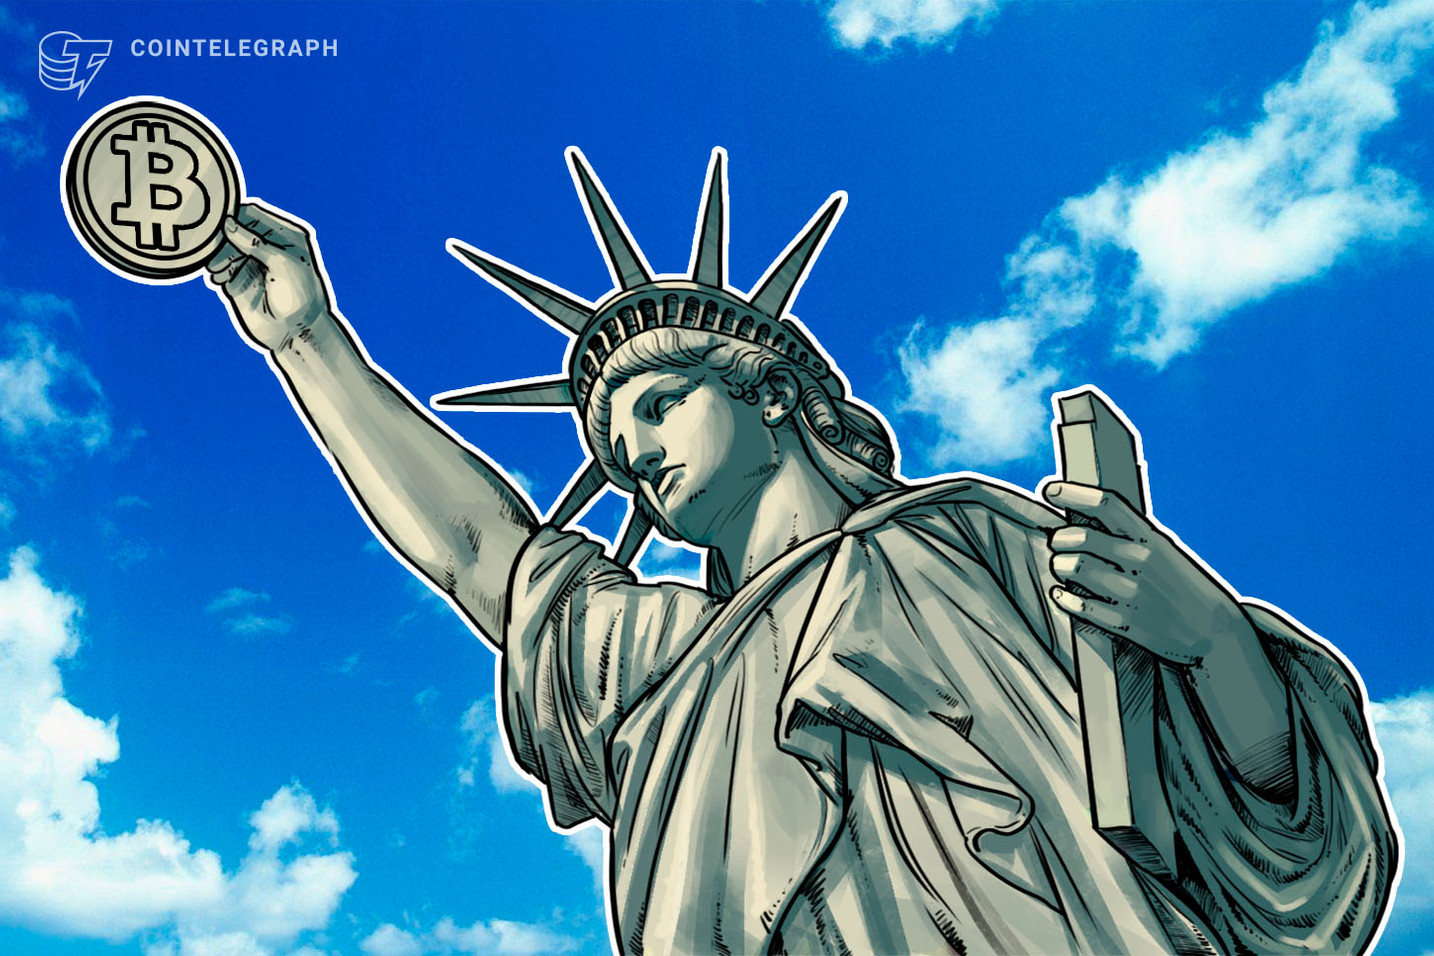 'Still so early' — 7% of Americans have bought Bitcoin, study finds